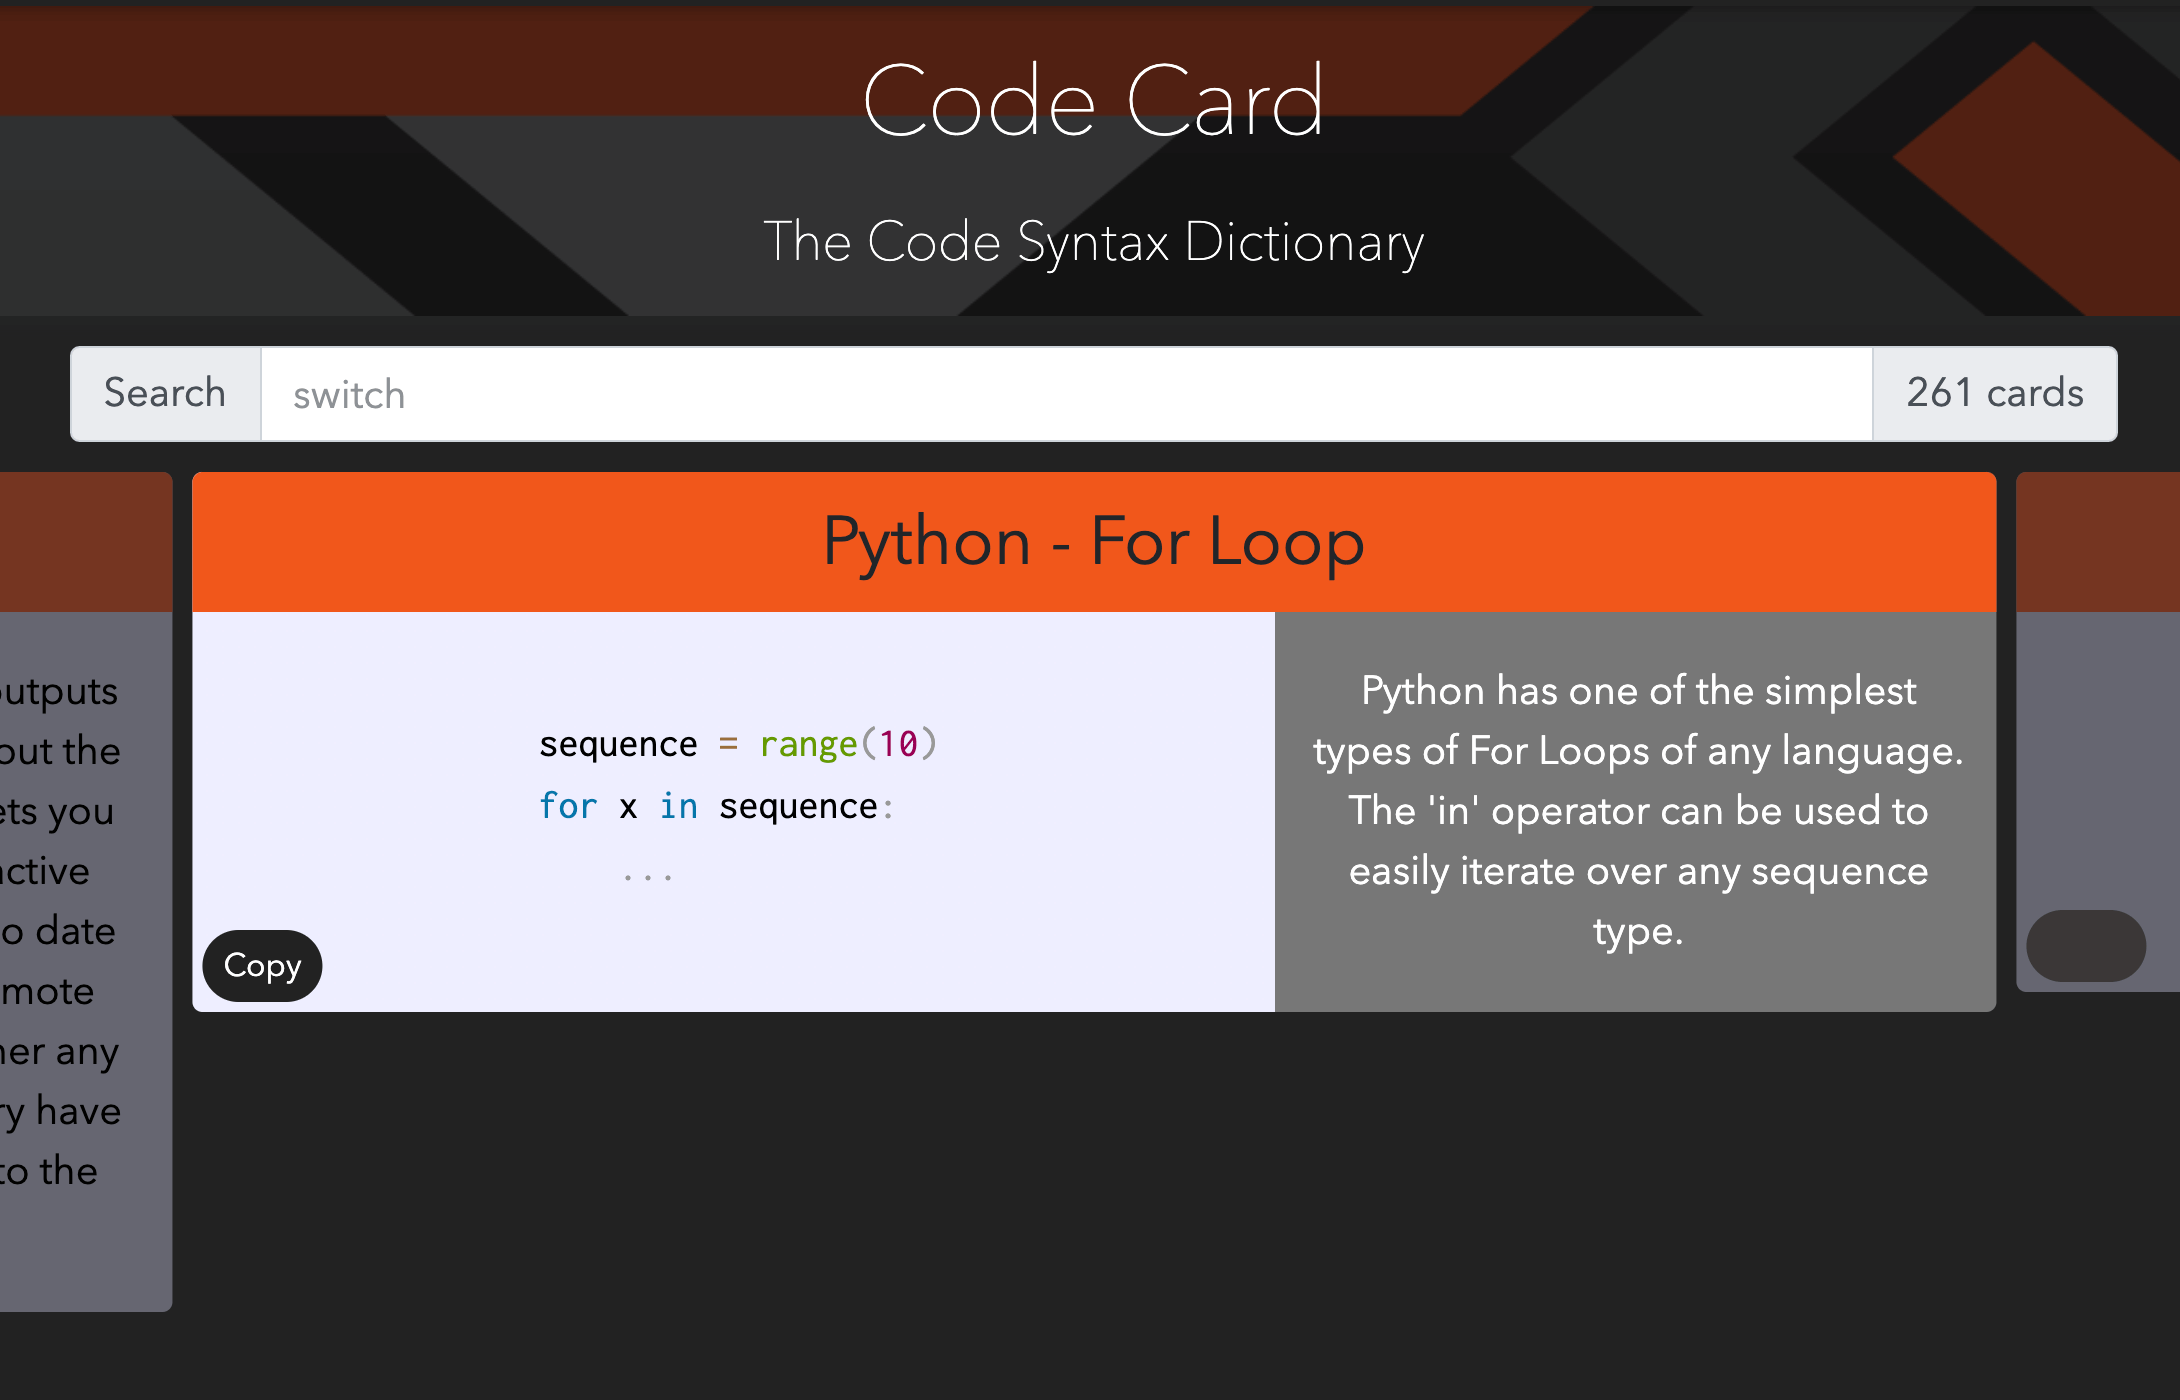 Image of the Code Card project